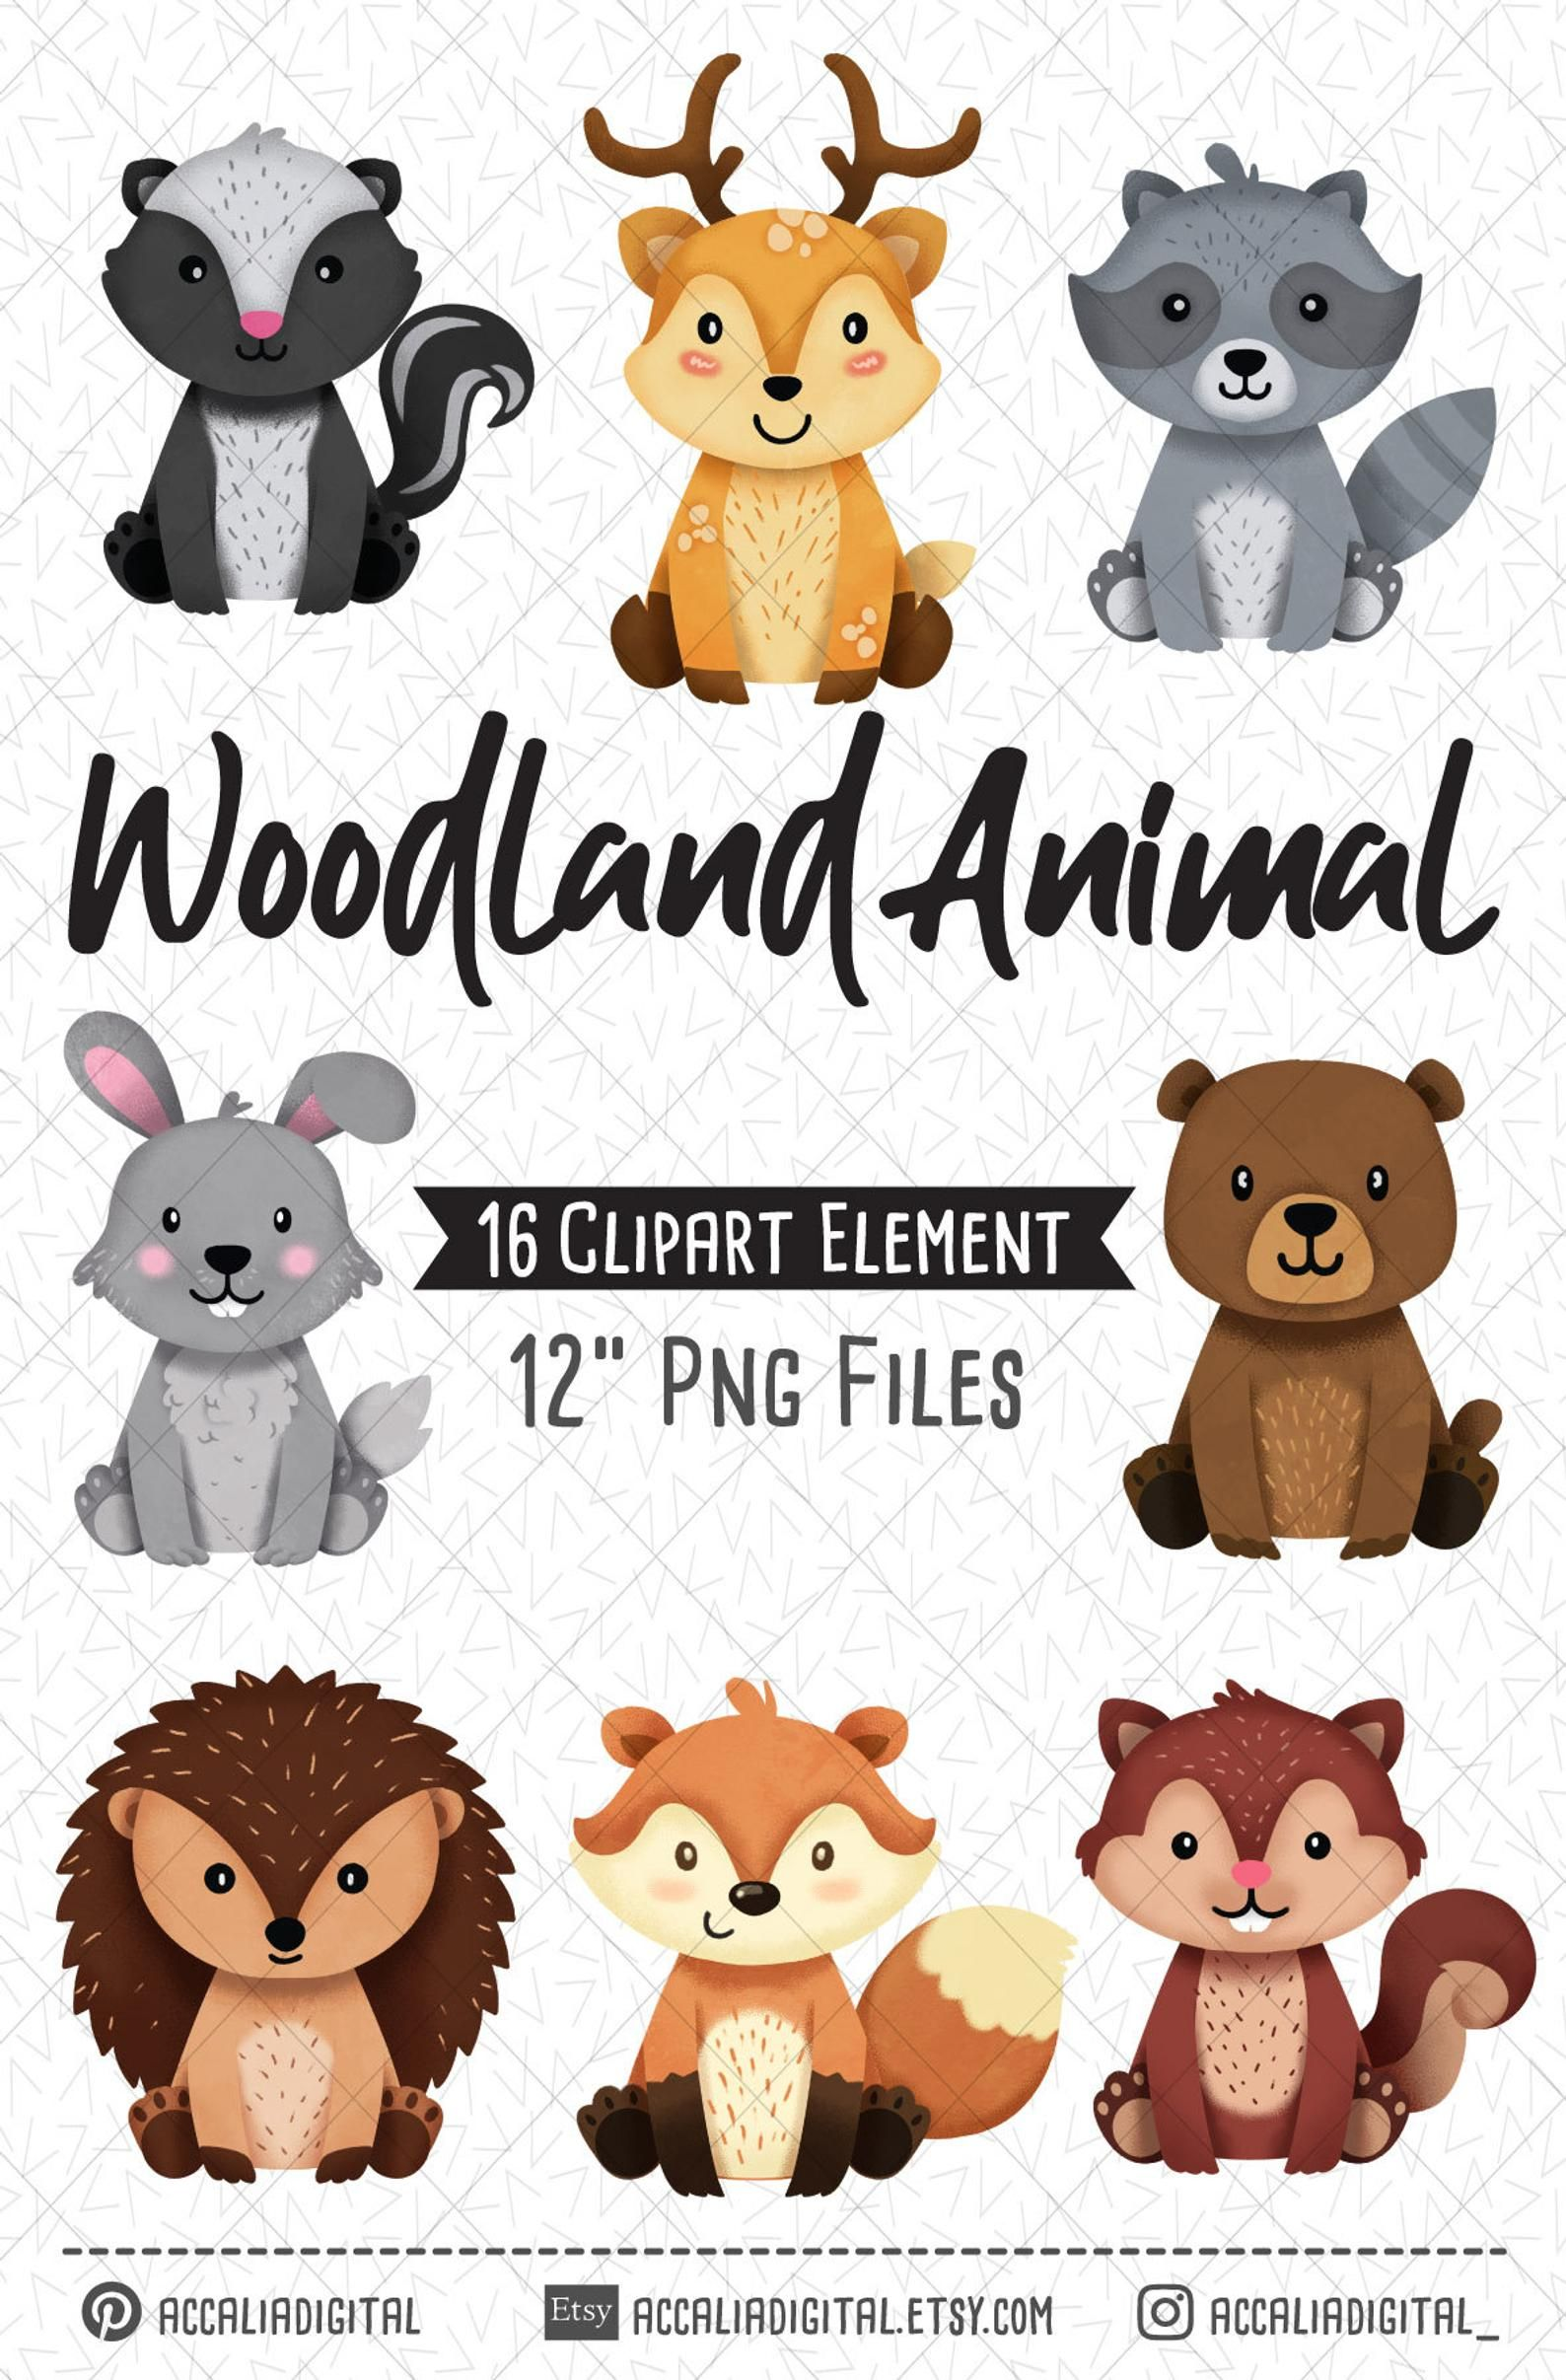 Woodland animals Clipart, Raccoon, Fox, Forest Friends